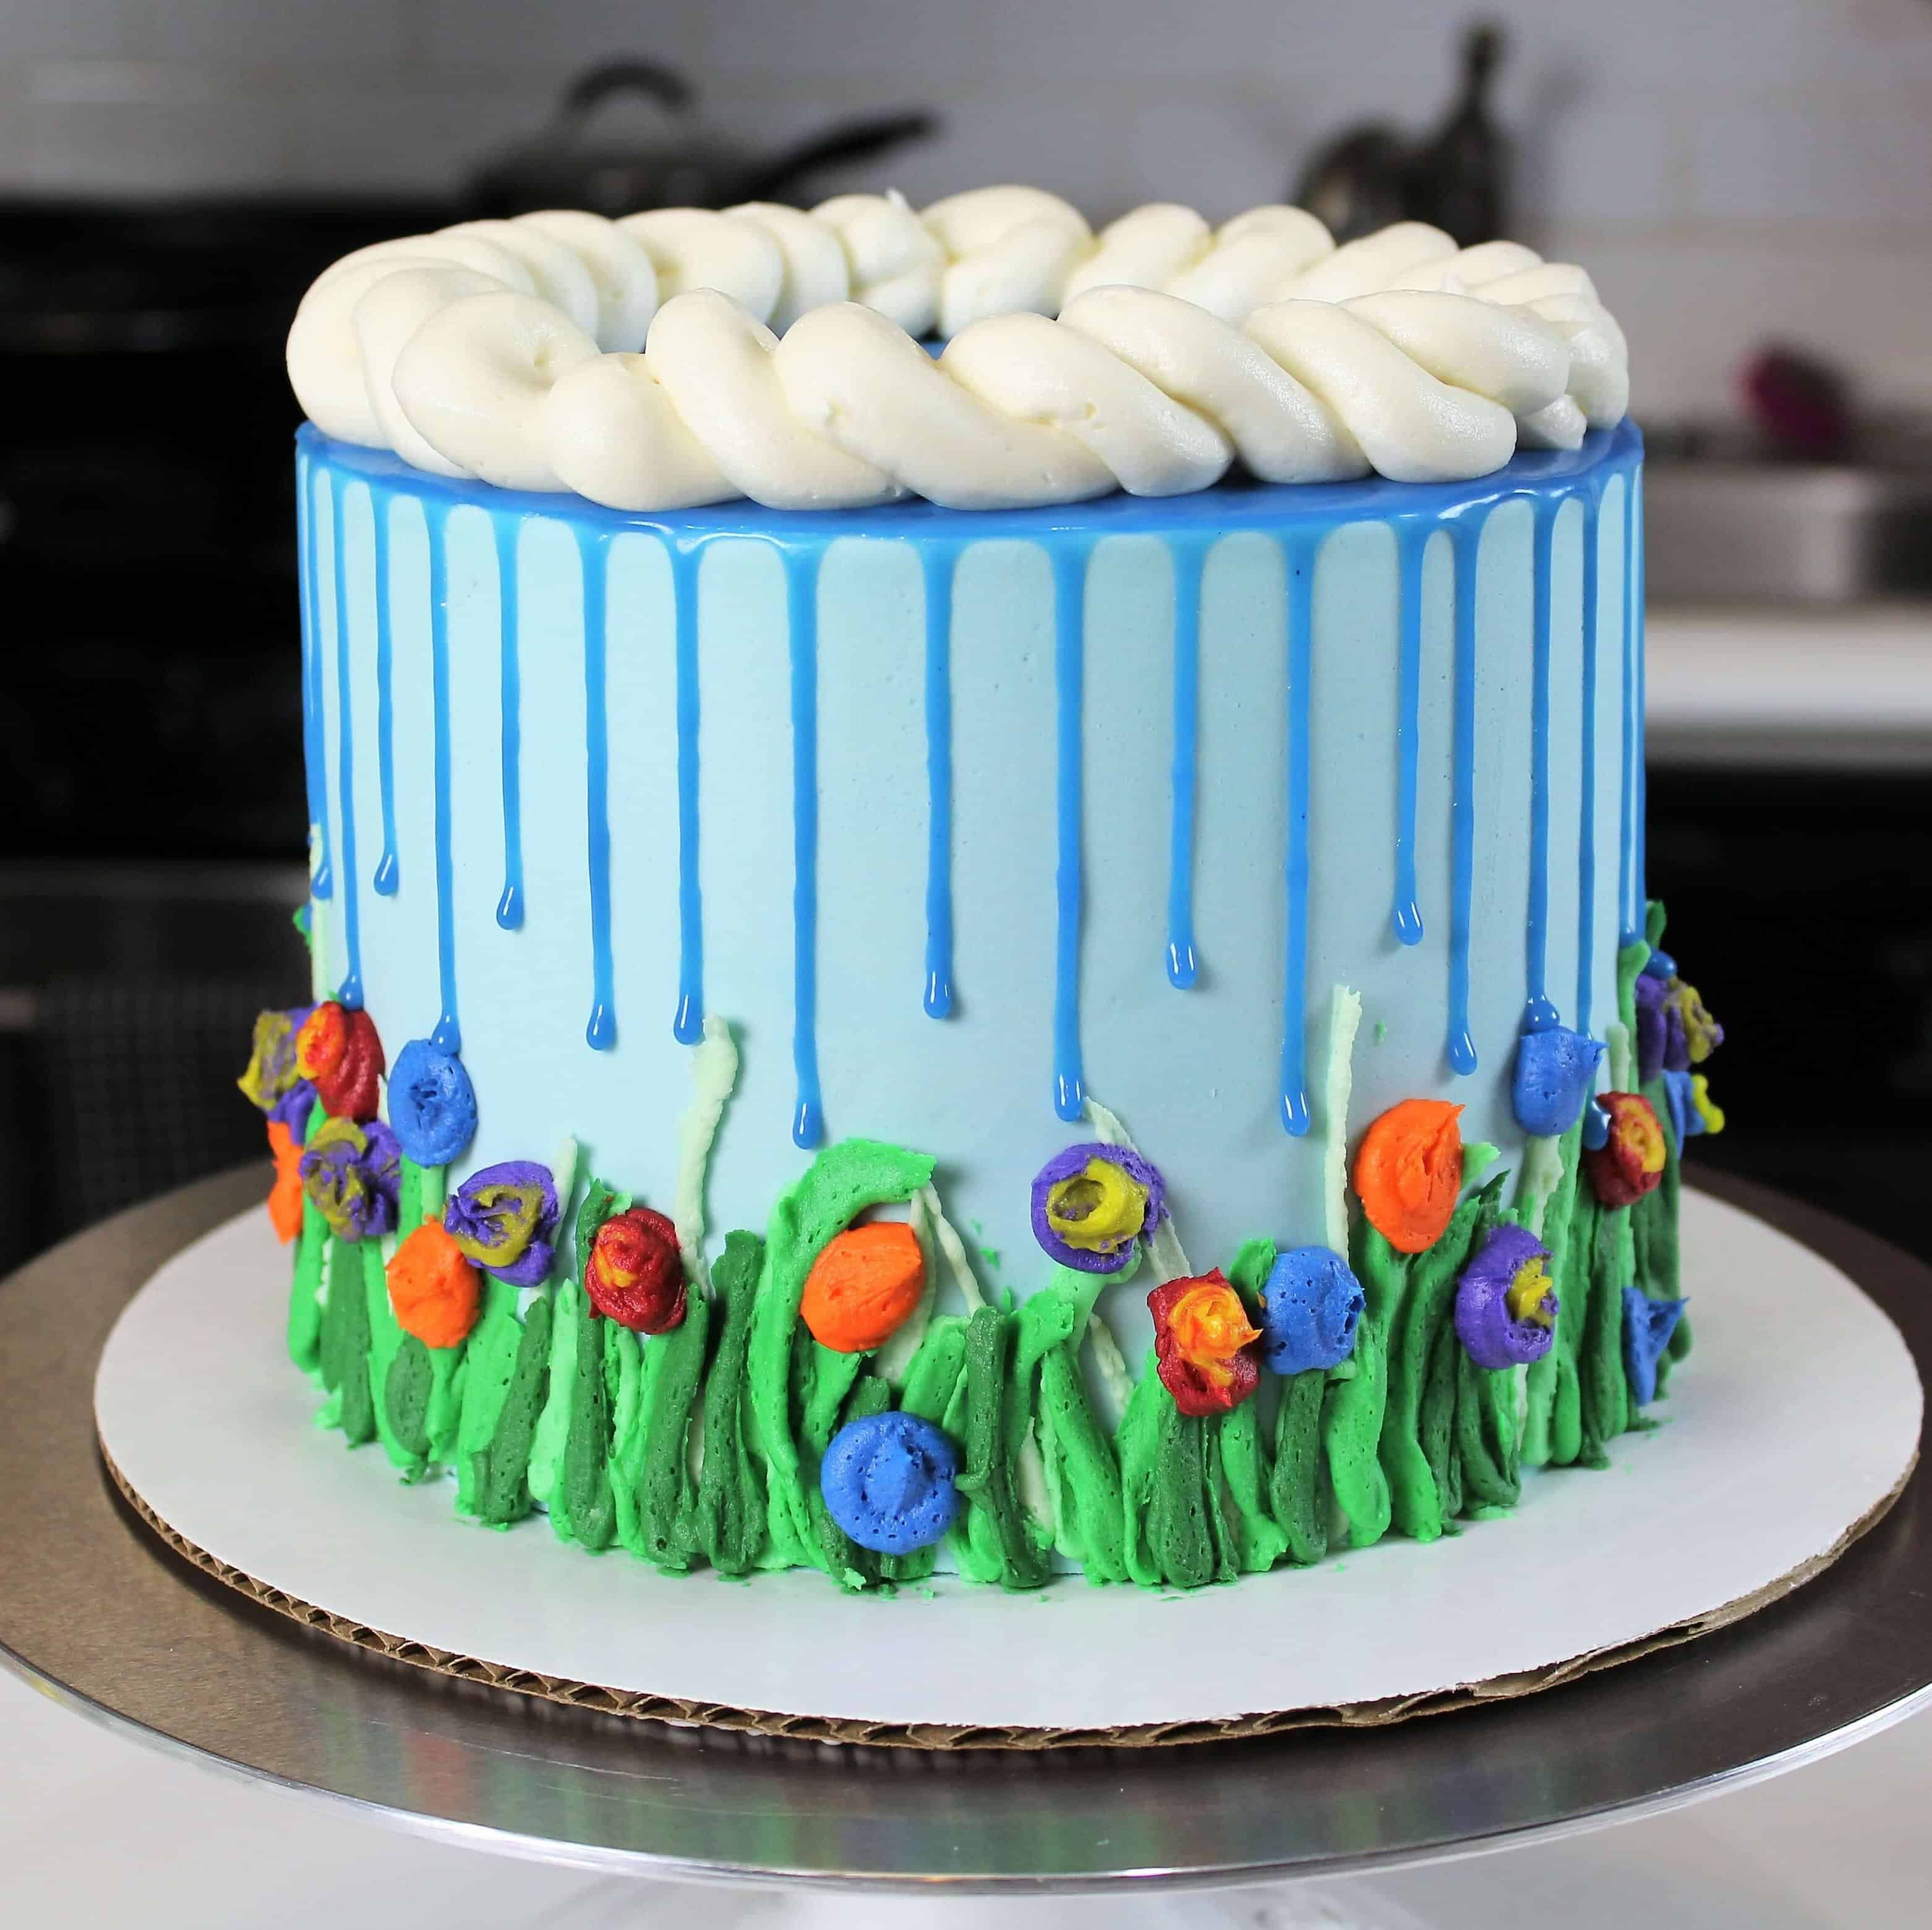 April showers cake with blue drips to look like rain